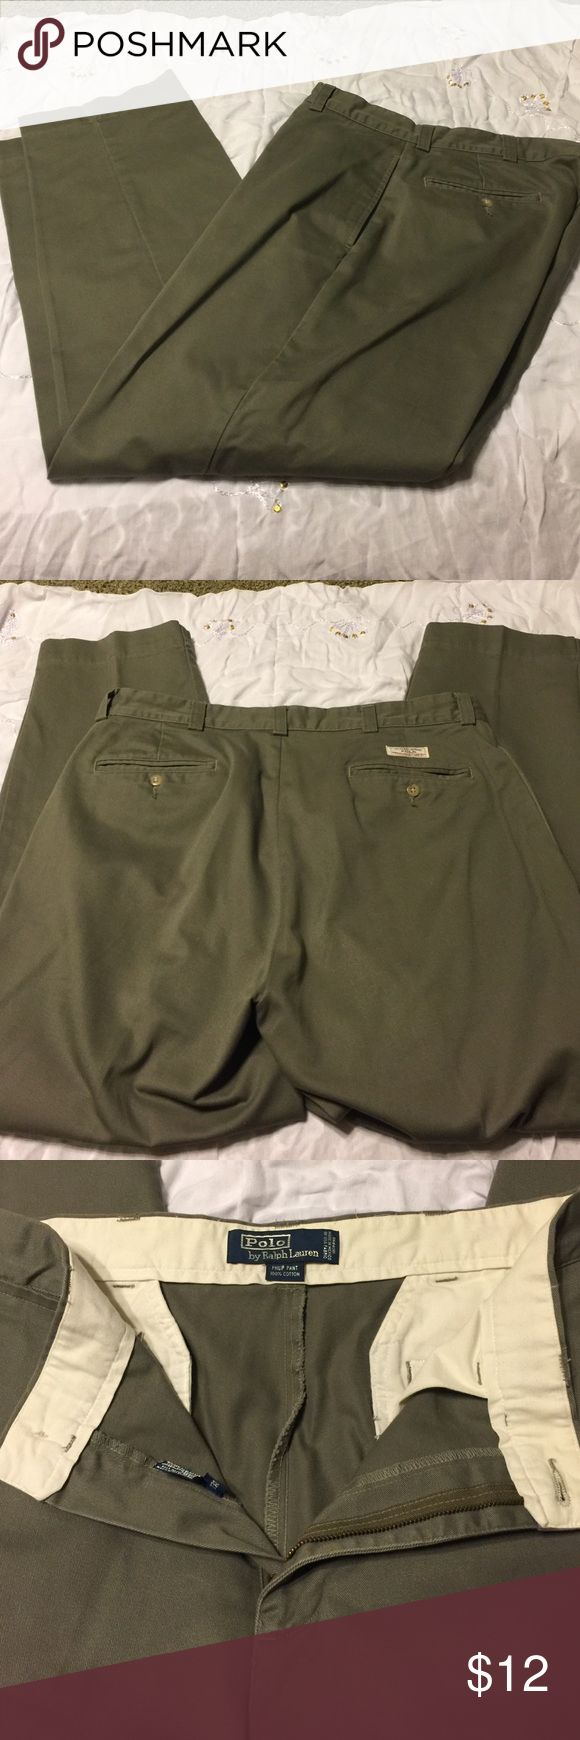 Polo by Ralph Lauren Men's pants Size 34x30, 💯 percent cotton. Great condition!  Greenish. Polo by Ralph Lauren Pants Chinos & Khakis